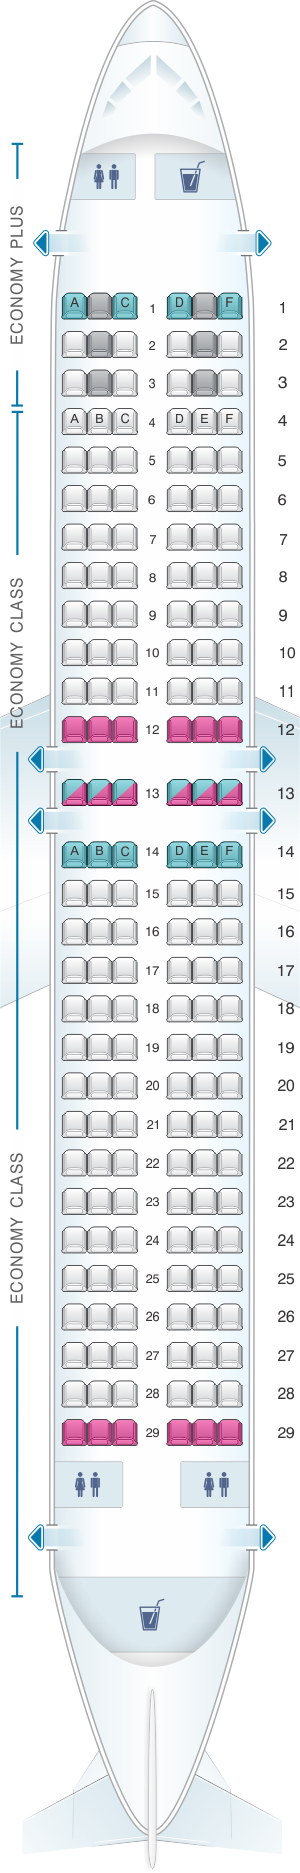 Seat map for WestJet Boeing B737 800